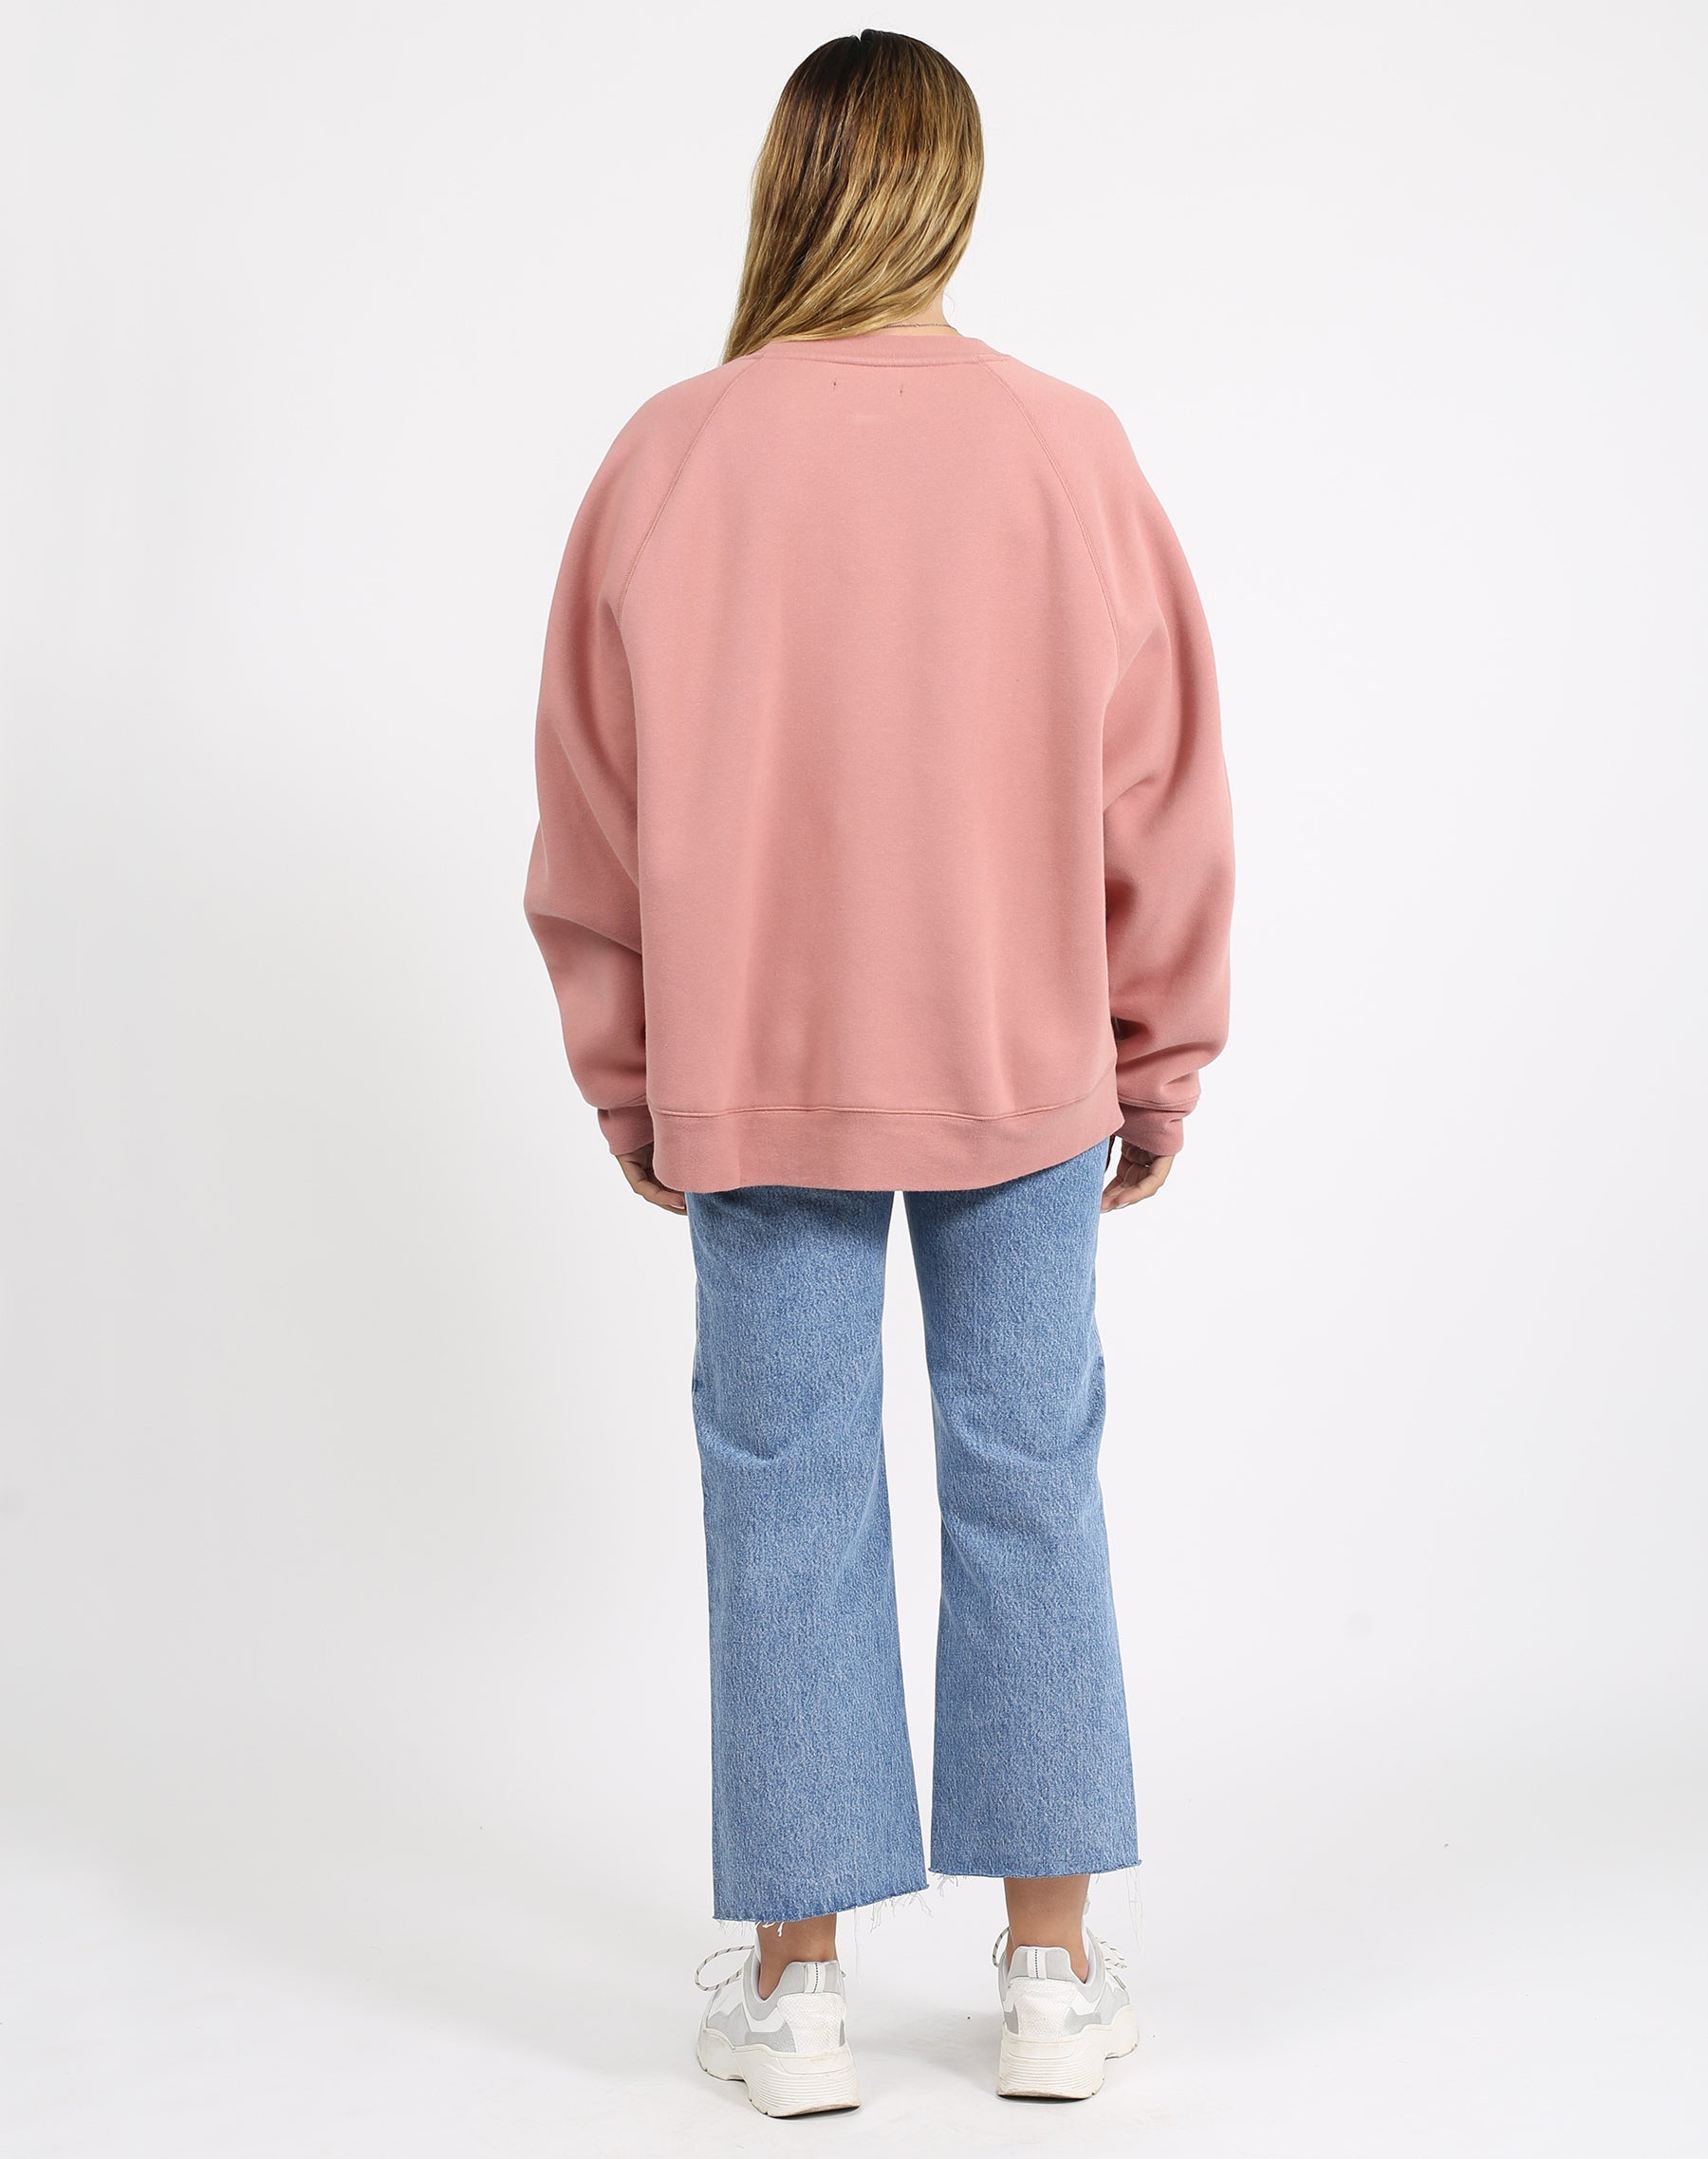 This is a photo of the back of a model wearing the welcome to the babes club not your boyfriend fit crew neck sweatshirt in vintage rose by brunette the label.